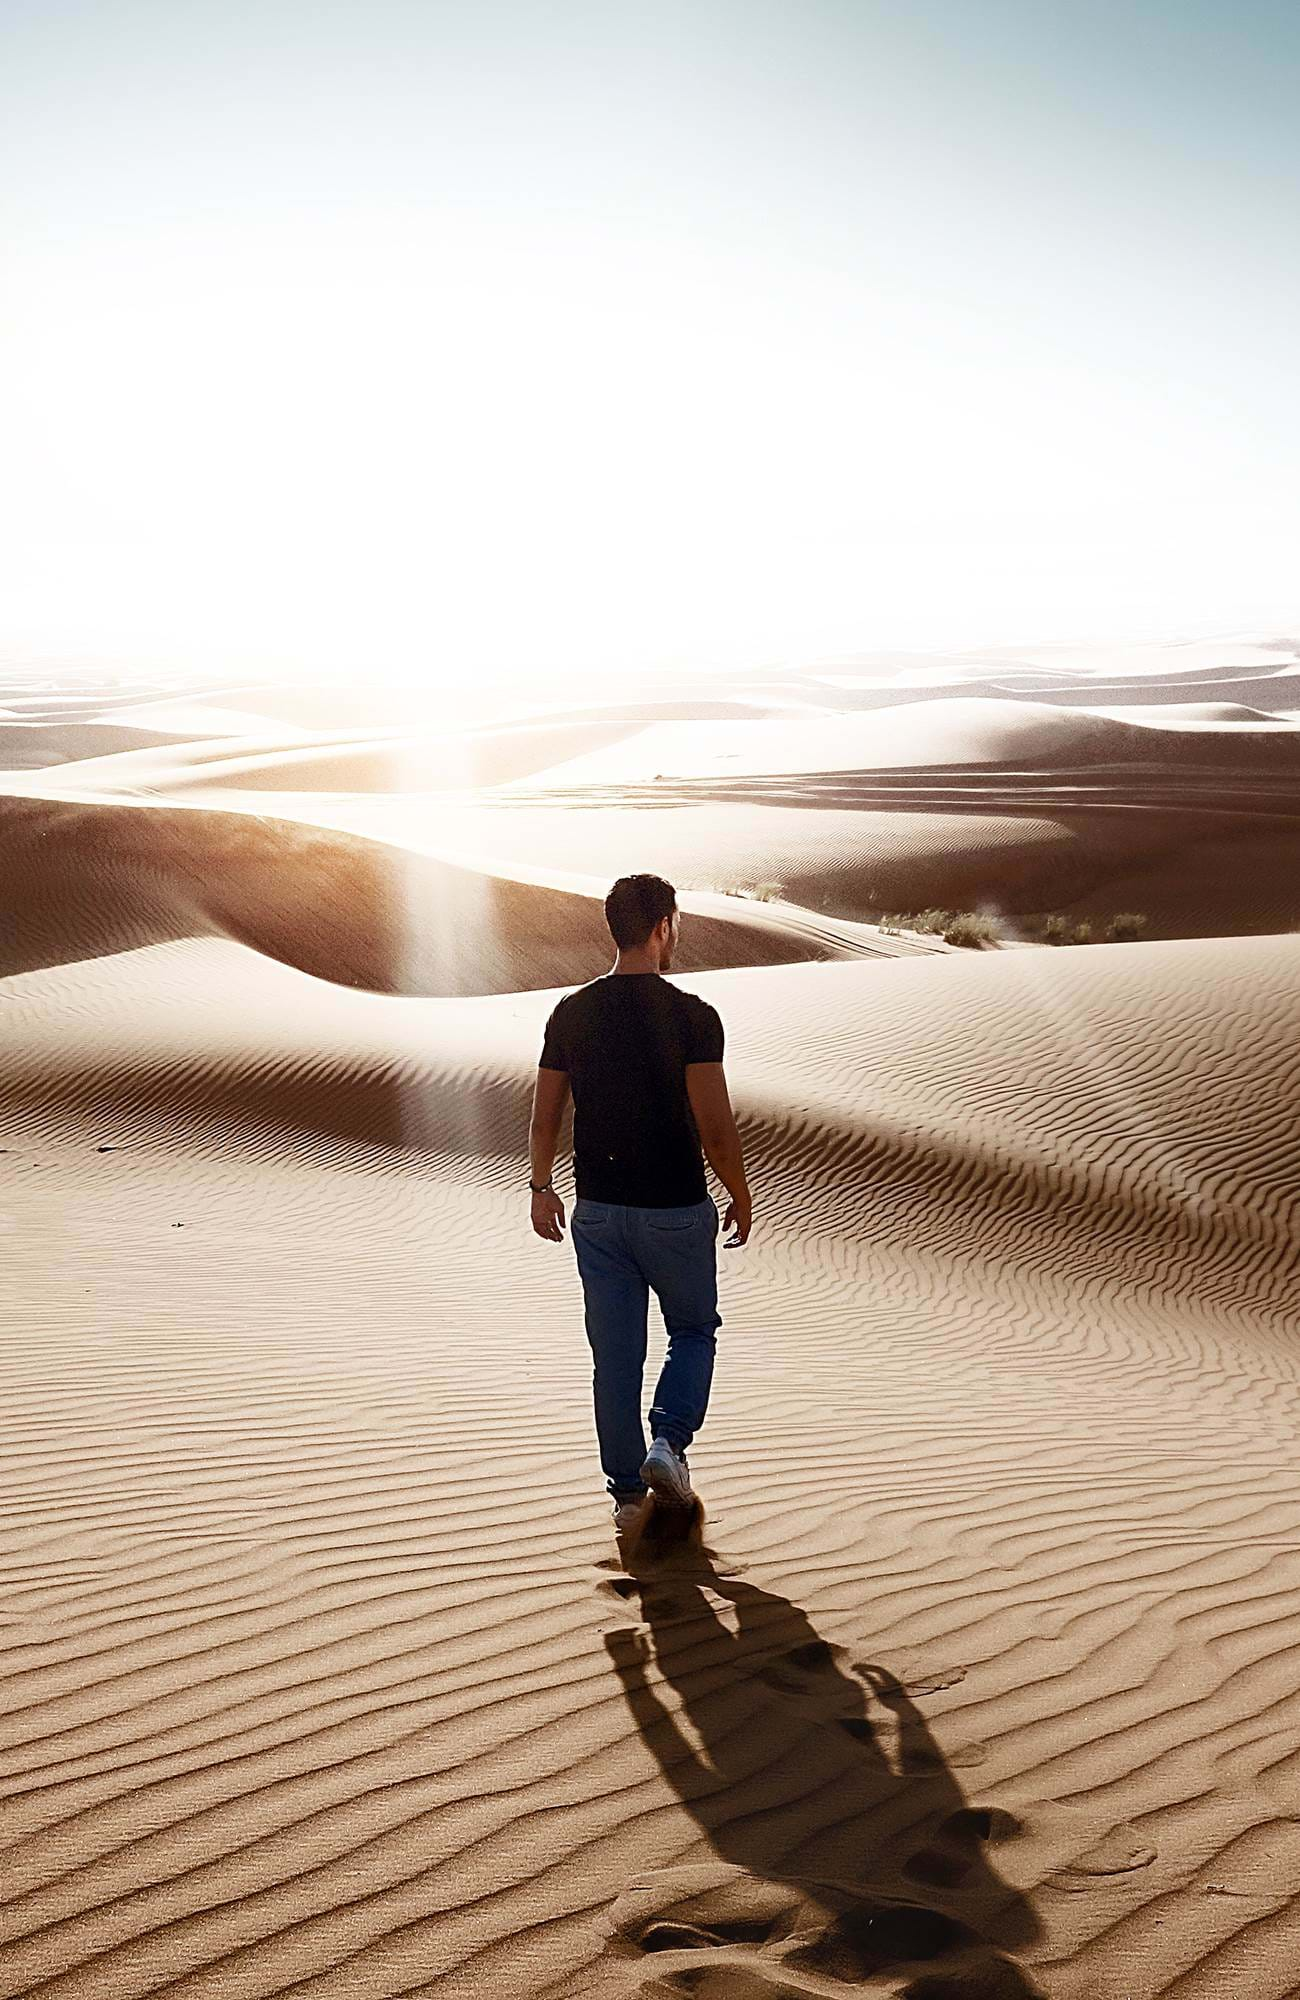 dubai-united-middle-east-man-walking-in-sand-sidebar